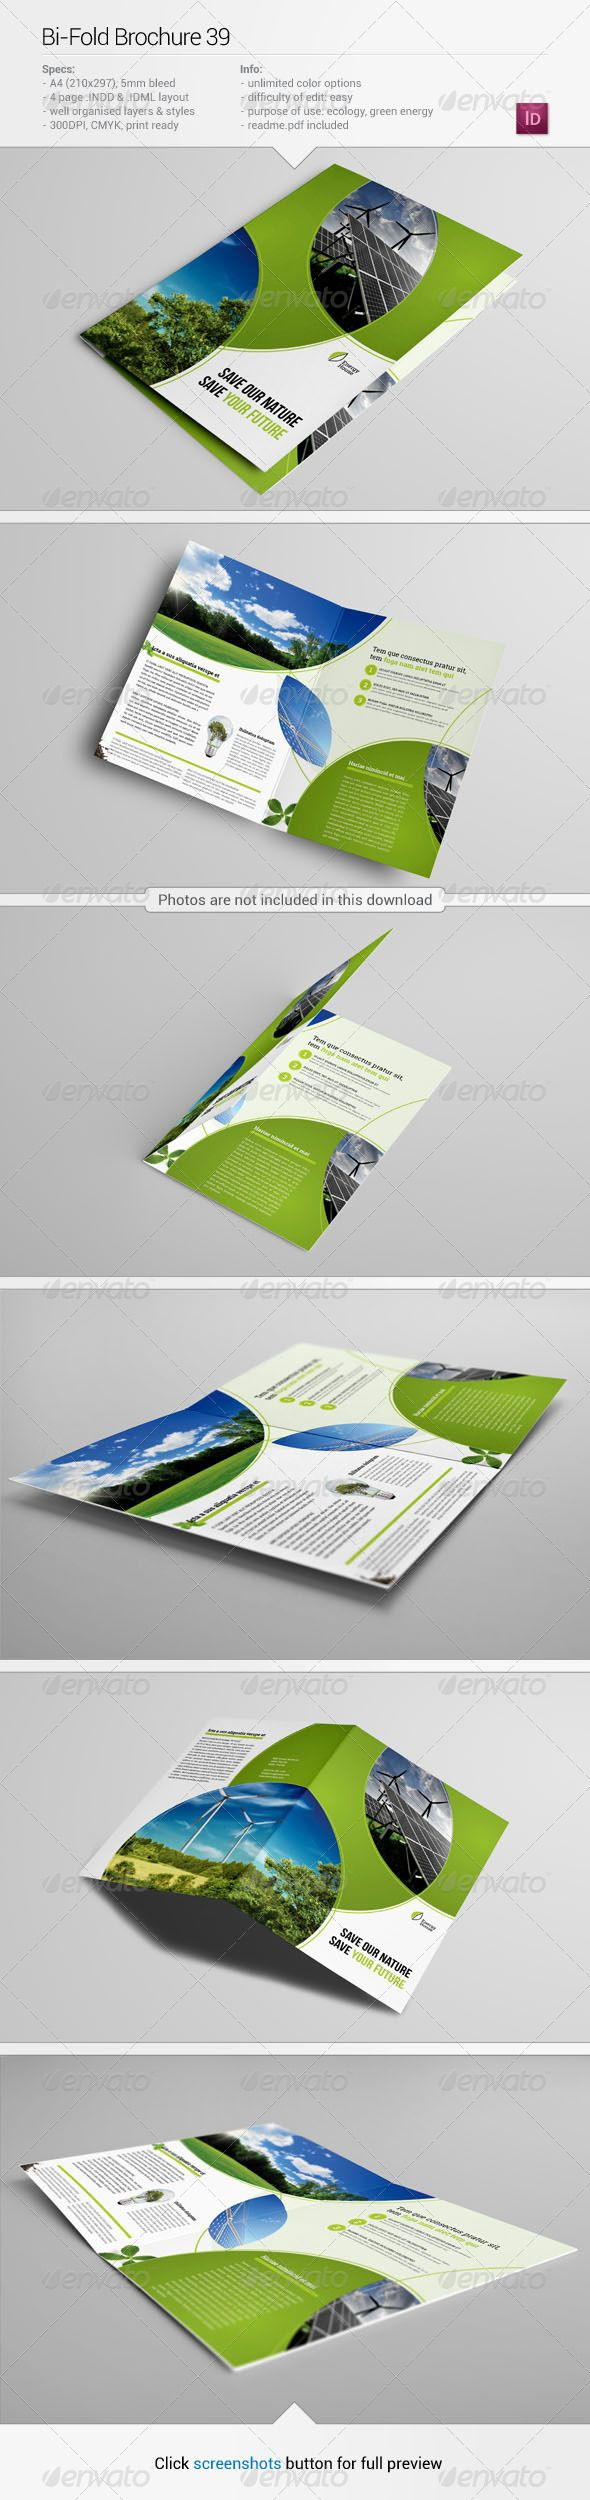 Bi-Fold Brochure 39 by Demorfoza                                                                                                     About this item Description: